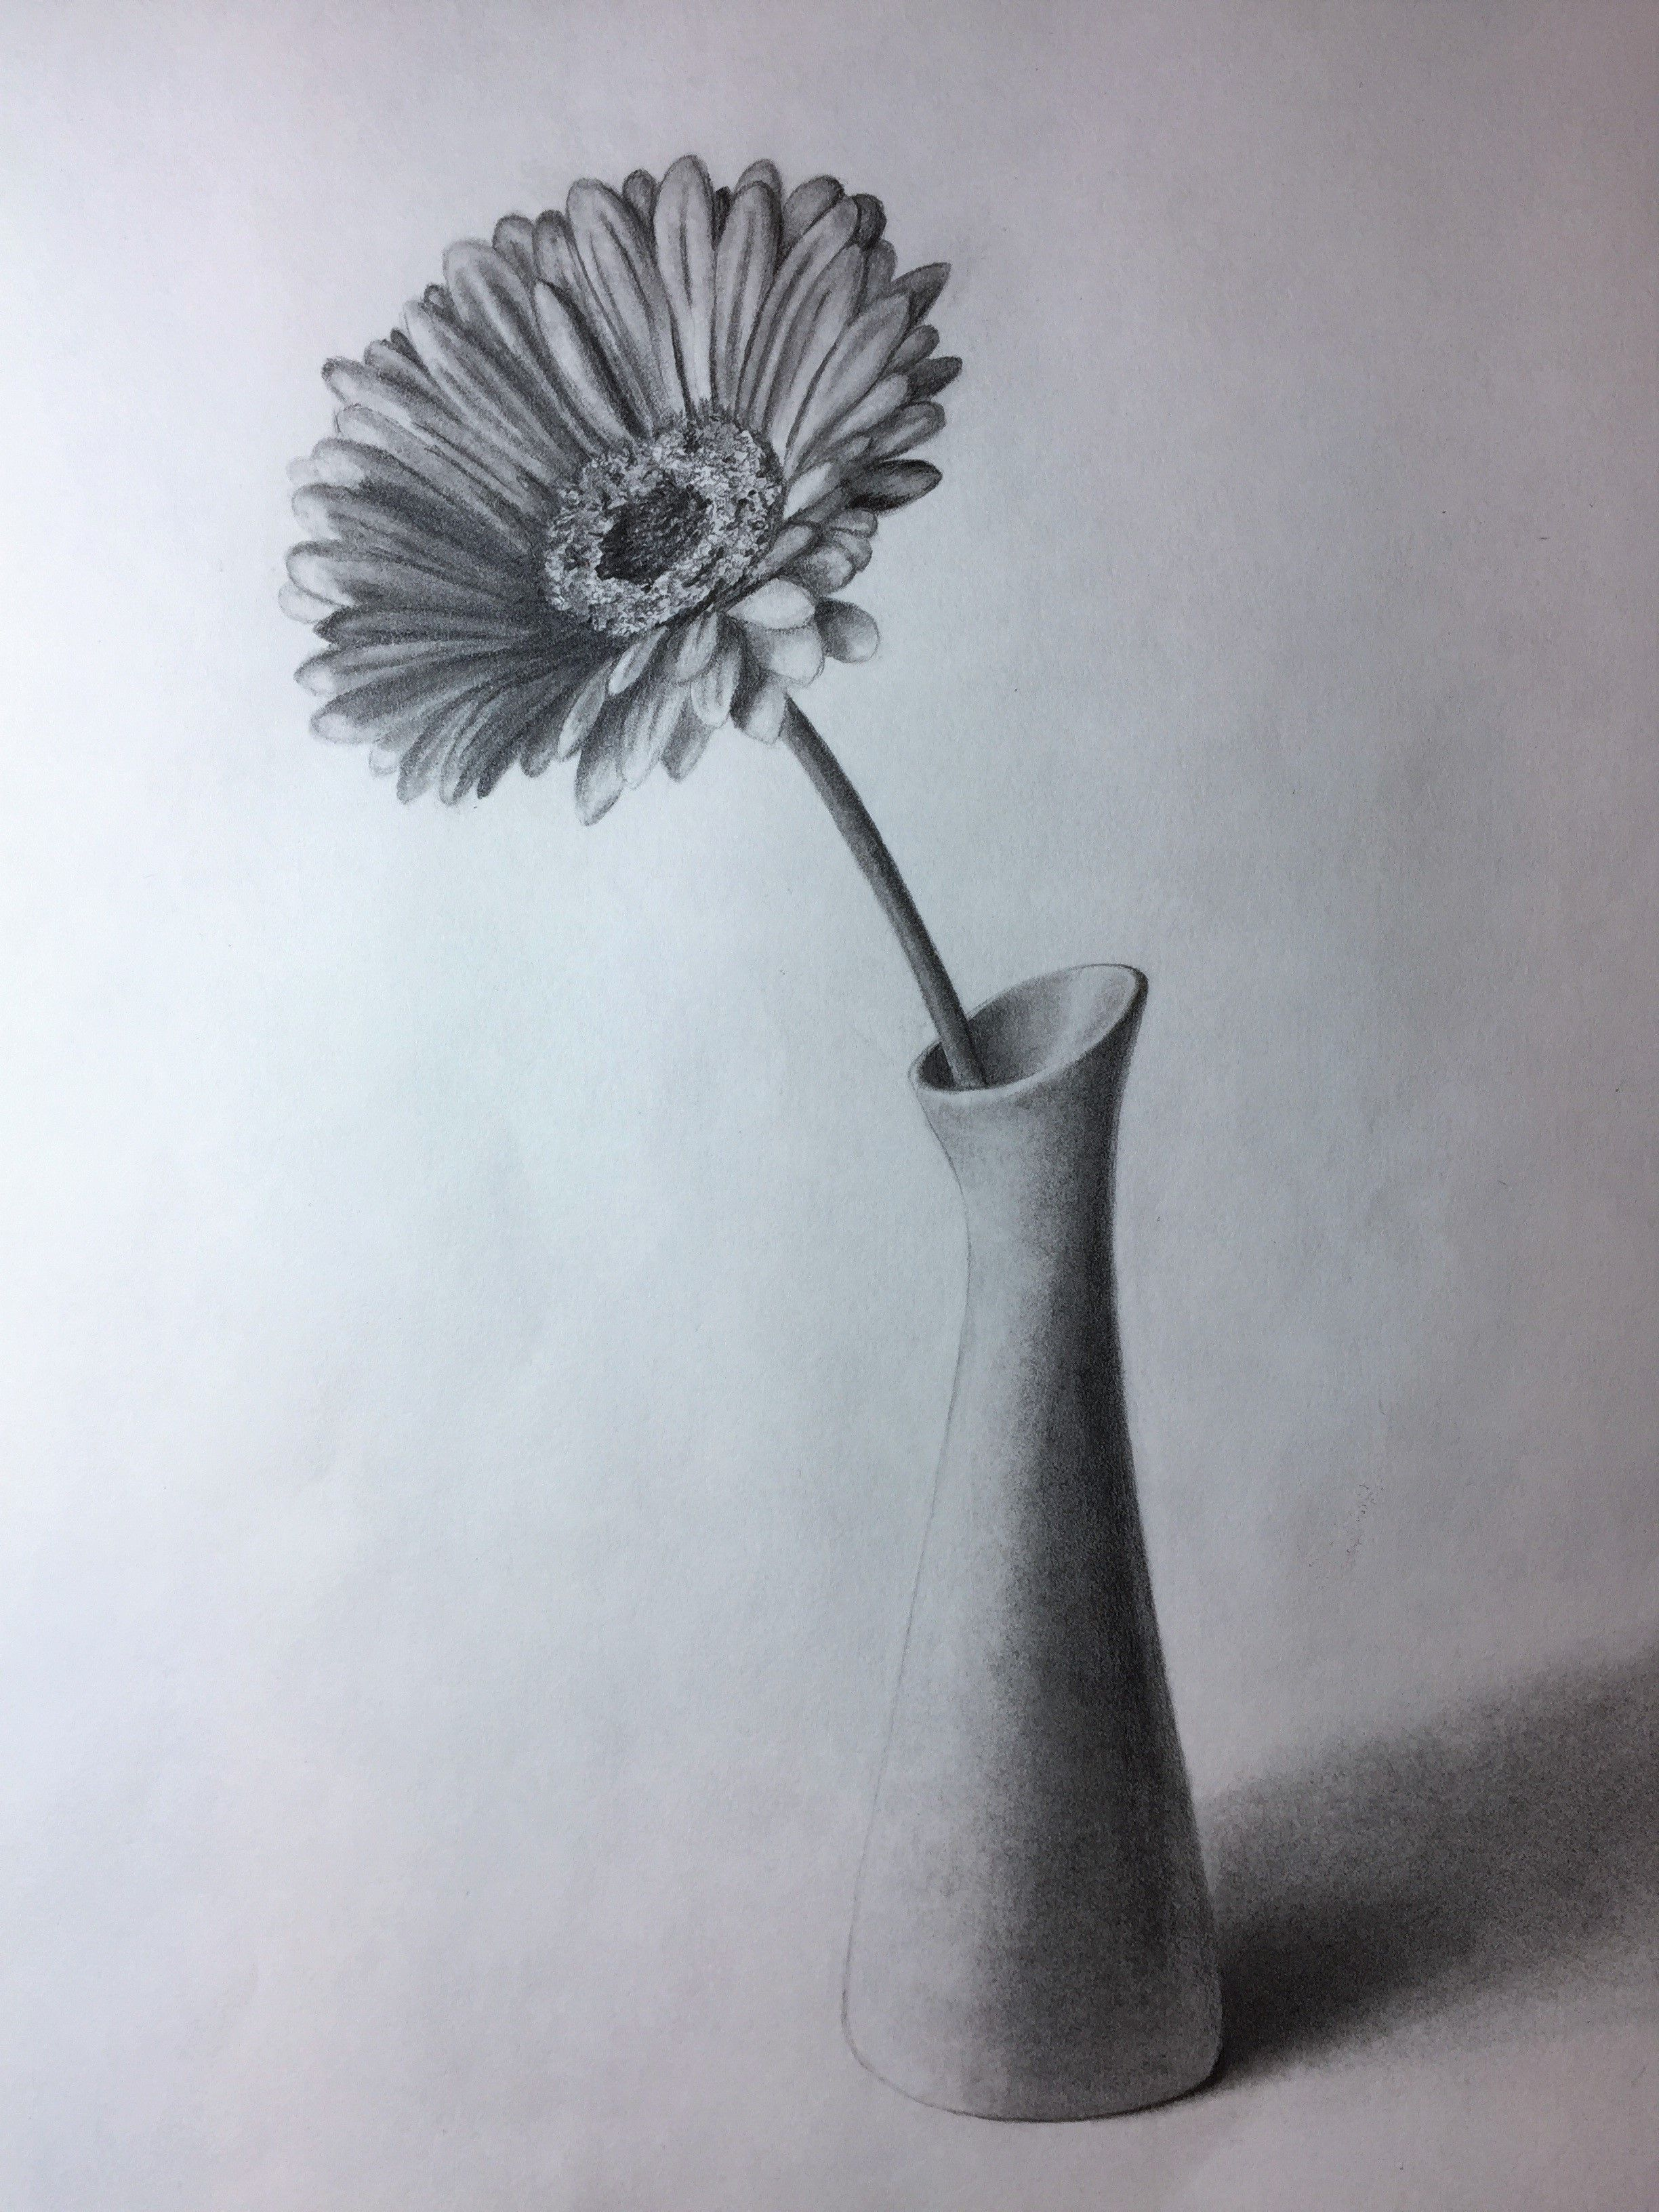 Gerbera in a vase. Graphite/pencil drawing by Elena